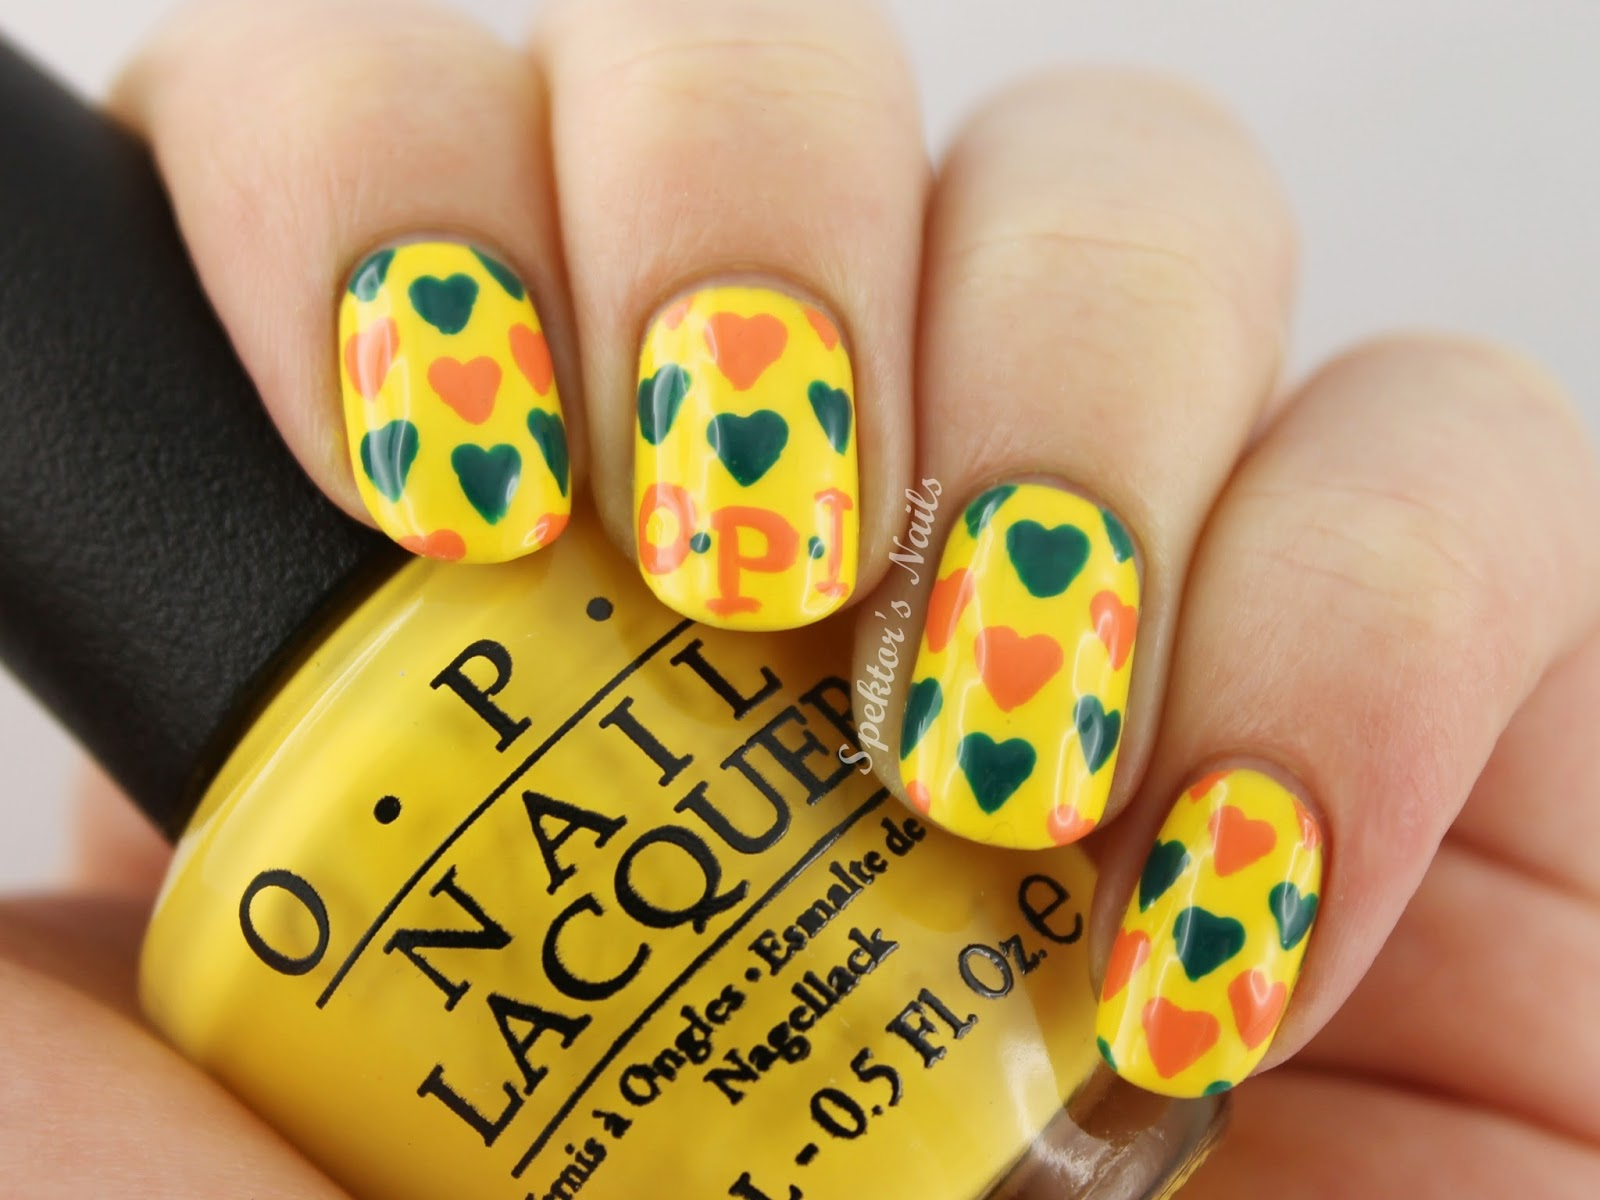 OPI Brazil Collection 2014 - Nail Art